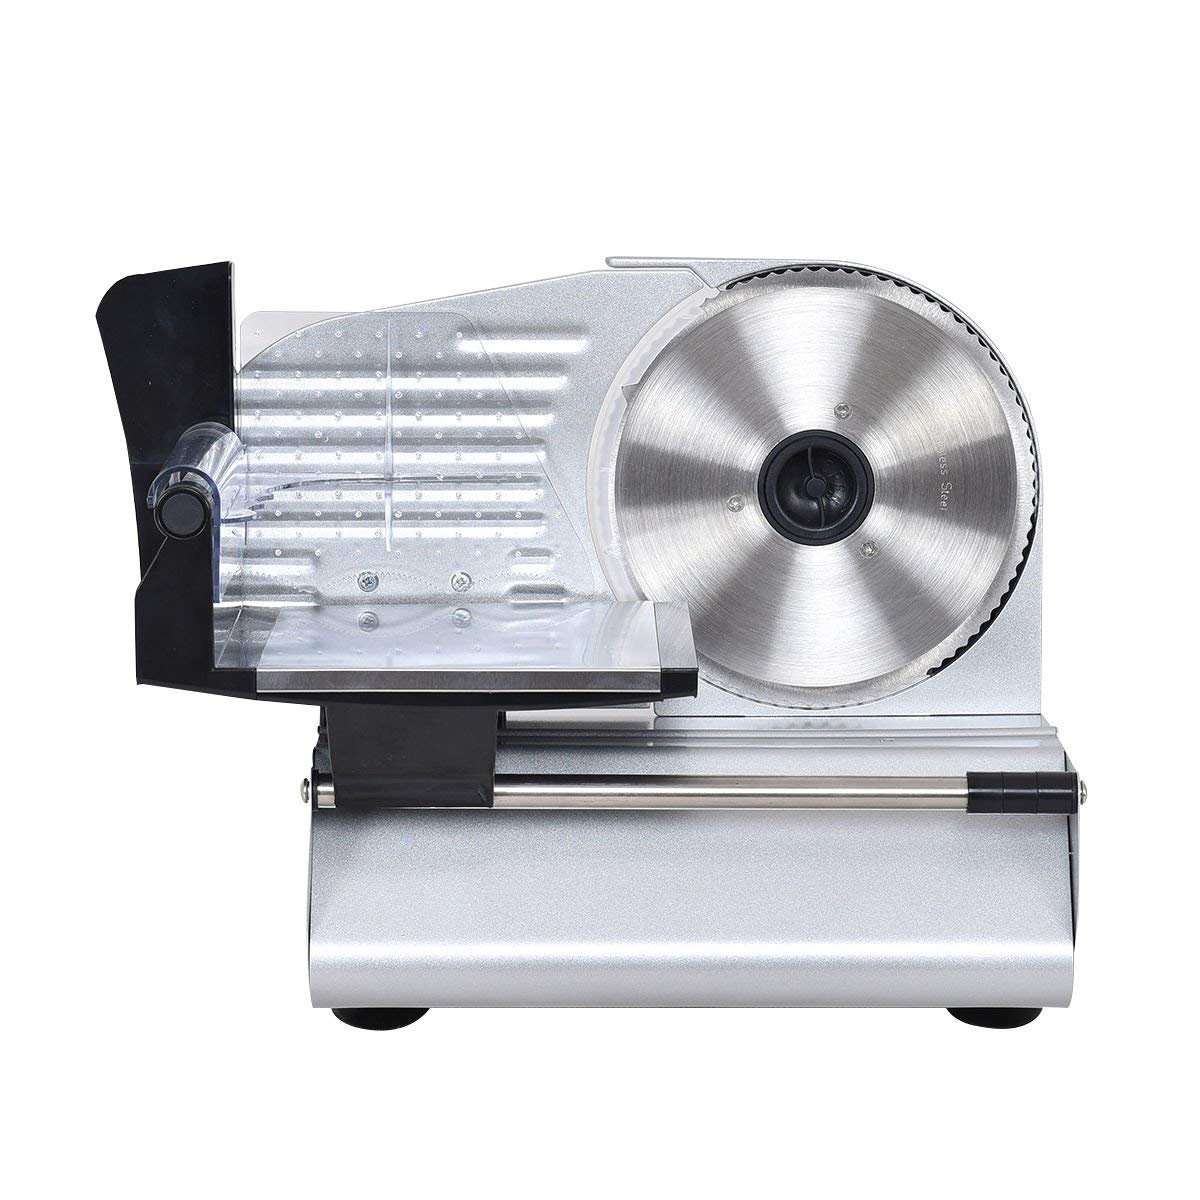 K&A Company Blade Electric Meat Slicer Cheese Deli Meat Food Cutter Kitchen Home Commercial Restaurant Home Machine Stainless Steel 7.5 Inch